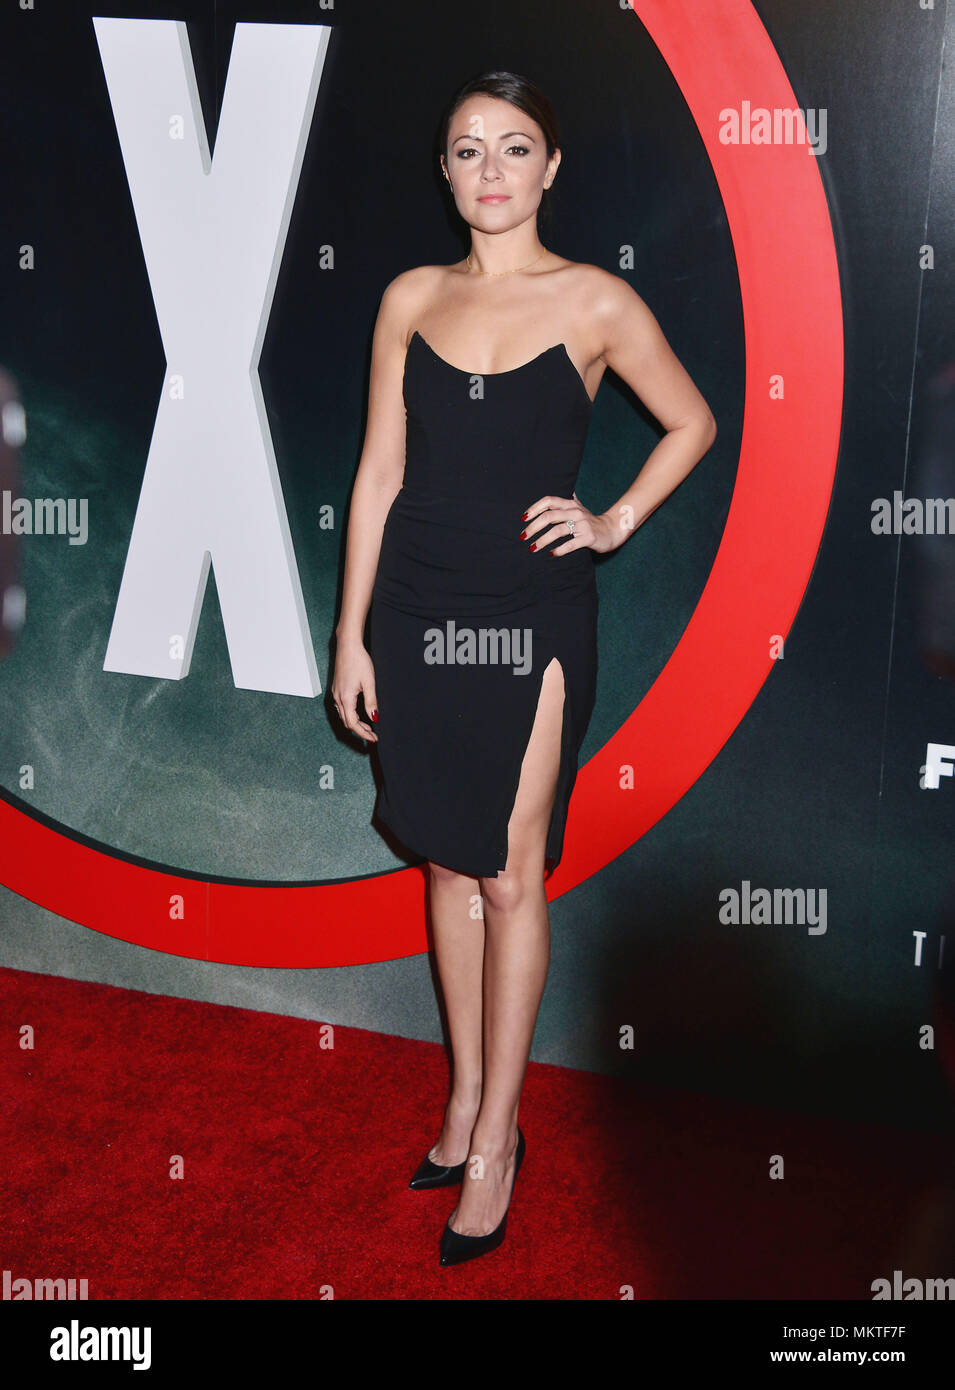 Italia Ricci 057  at The X-Files Premiere at California Science Center in Los Angeles, CA  January 12, 2016.-------- Italia Ricci 057  --------- Event in Hollywood Life - California,  Red Carpet Event, Vertical, USA, Film Industry, Celebrities,  Photography, Bestof, Arts Culture and Entertainment, Topix Celebrities fashion /  from the Red Carpet-2016, one person, Vertical, Best of, Hollywood Life, Event in Hollywood Life - California,  Red Carpet and backstage, USA, Film Industry, Celebrities,  movie celebrities, TV celebrities, Music celebrities, Photography, Bestof, Arts Culture and Entertai - Stock Image